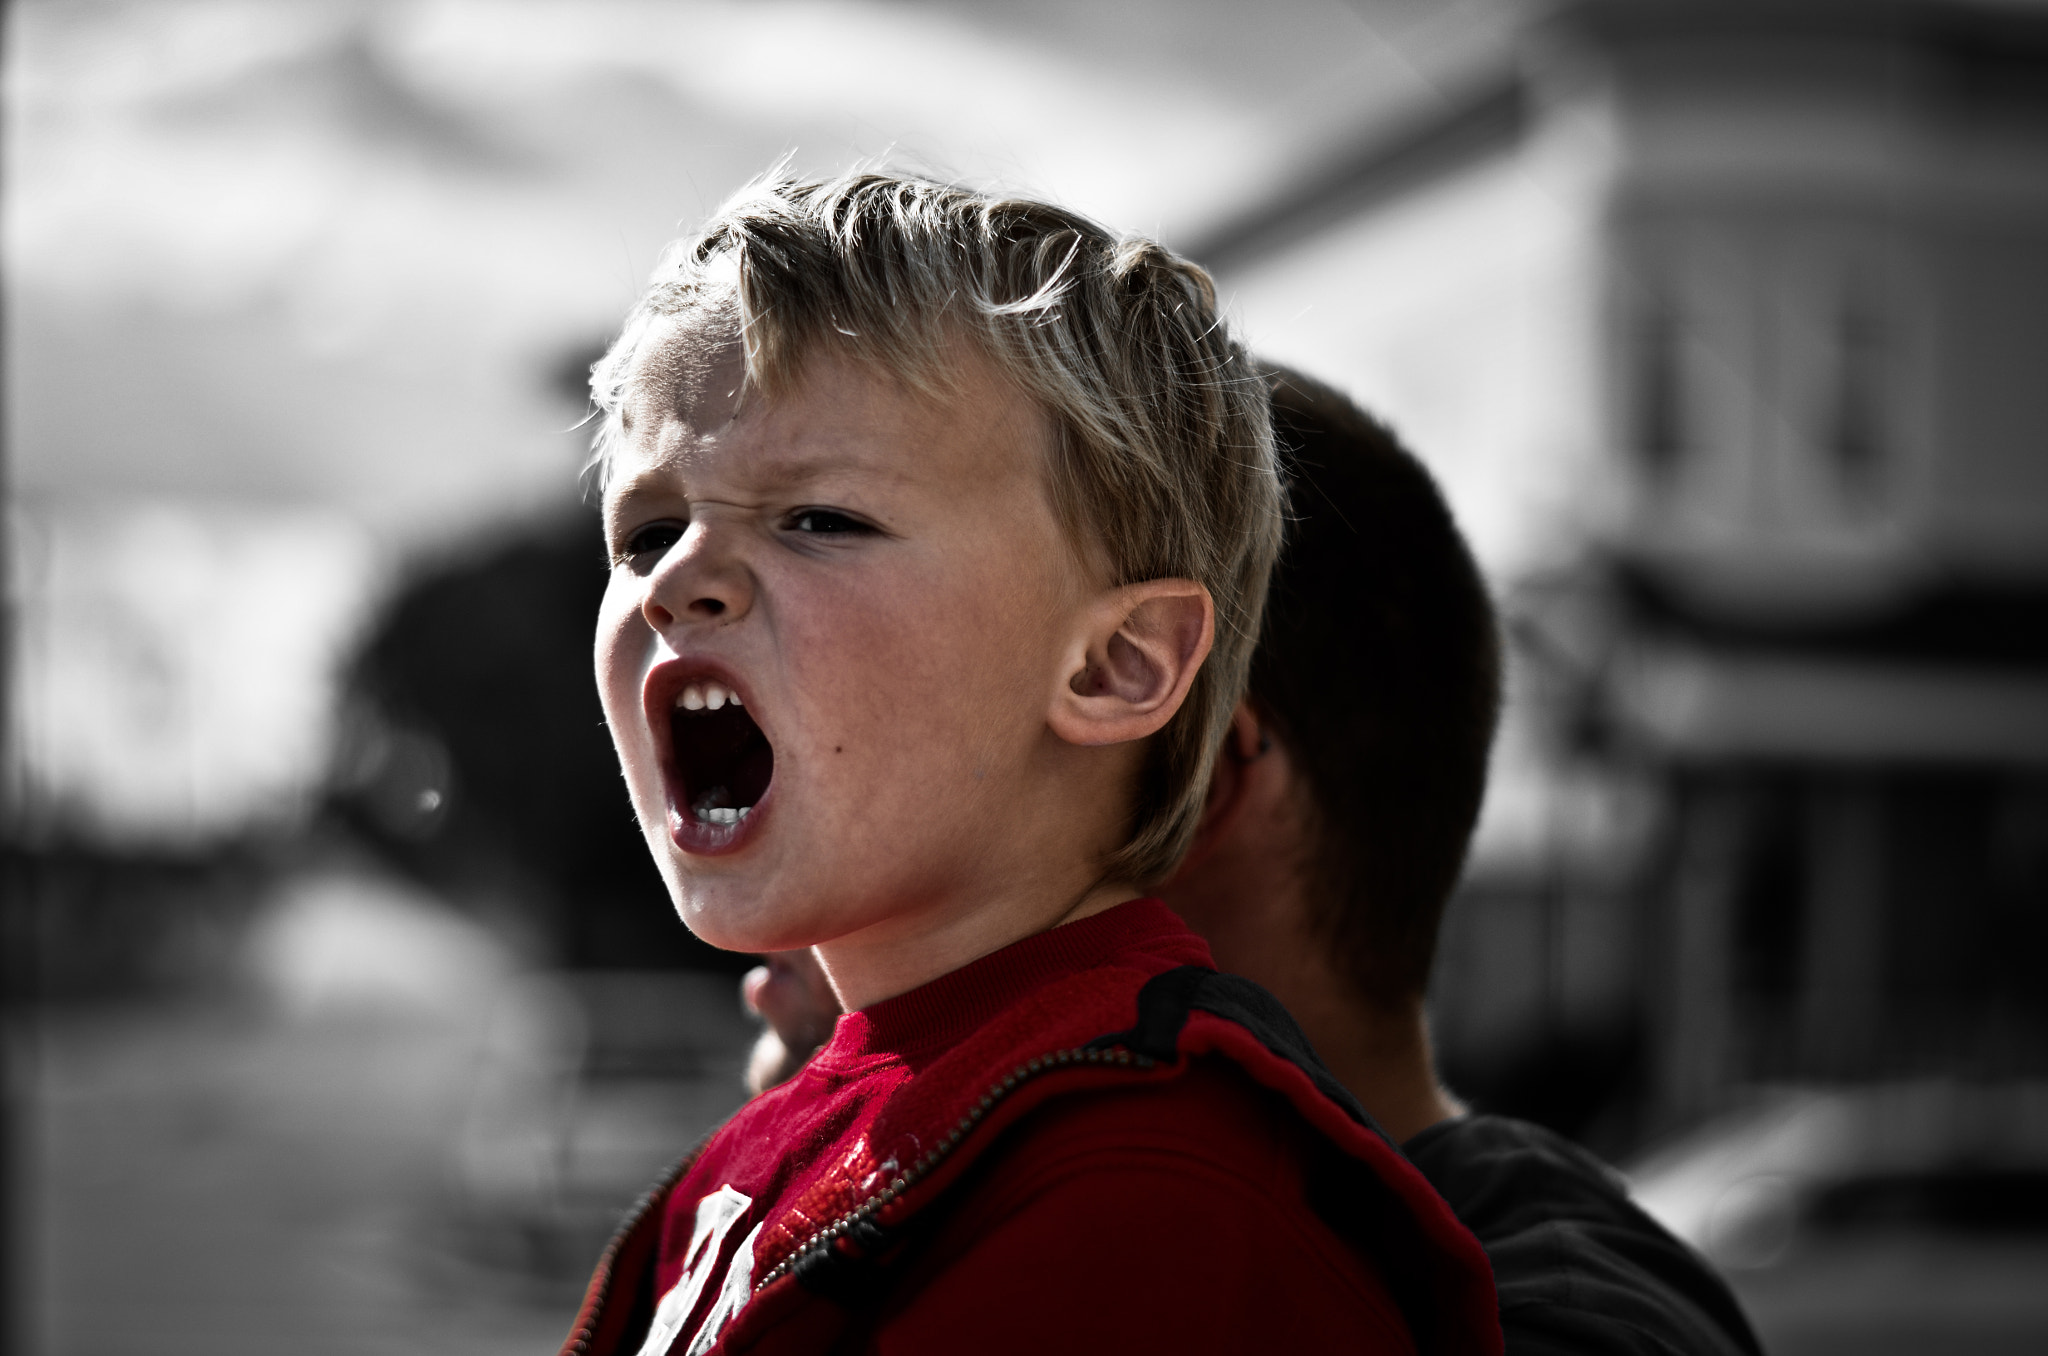 Photograph Devin's Roar by Robert DeBord on 500px